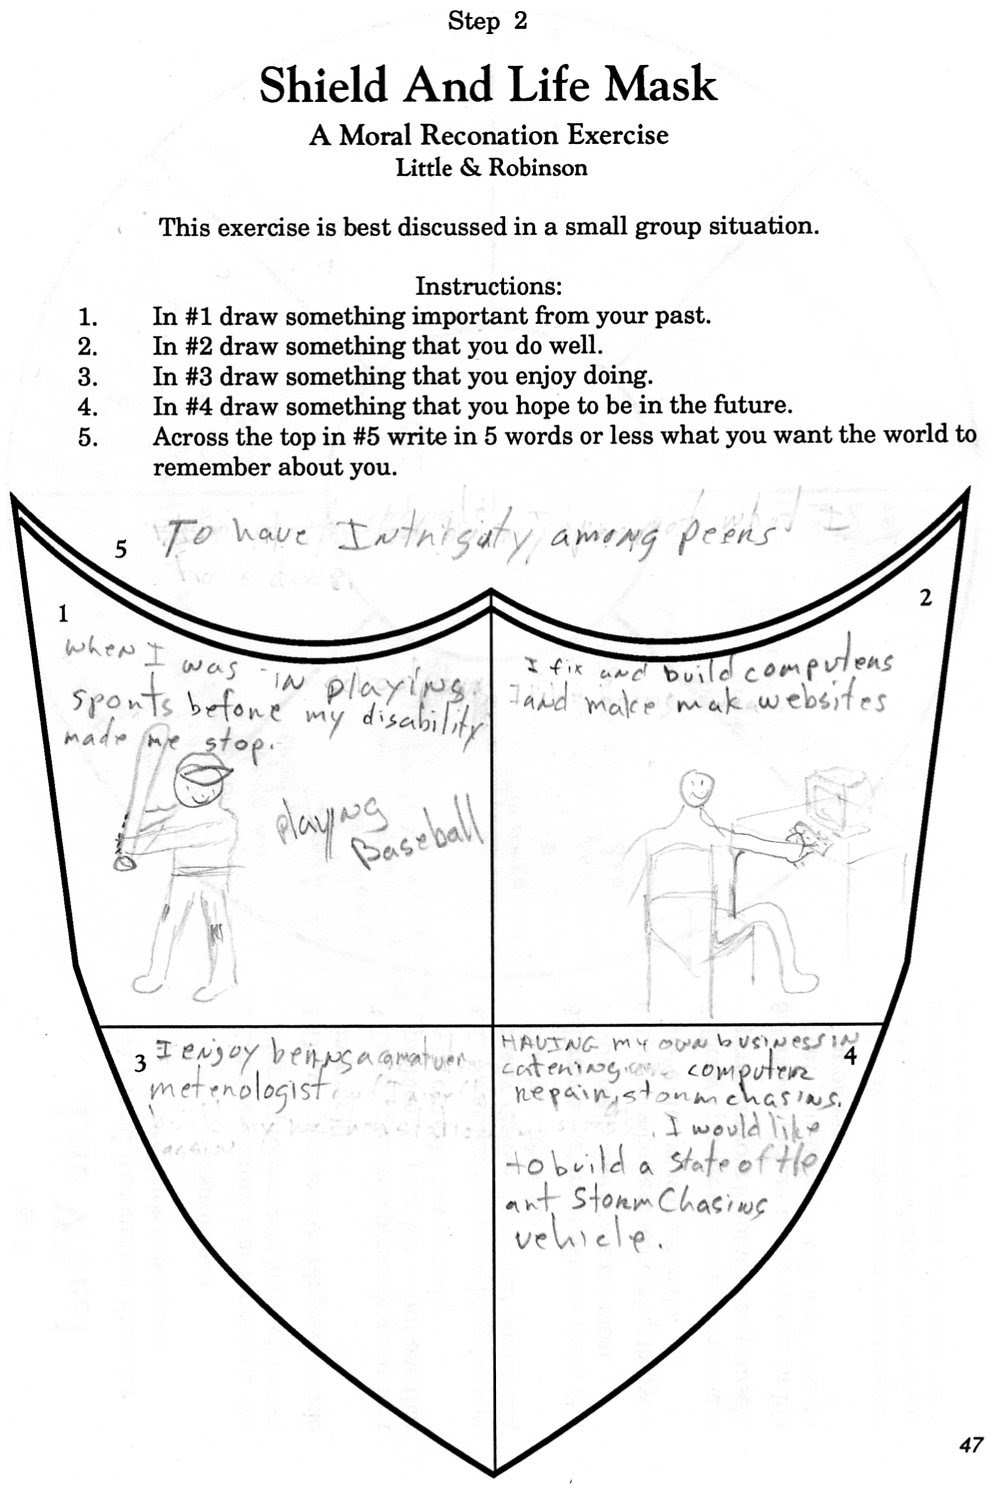 Printables Aa Step 2 Worksheet drugcourt caryhayes2003 step 2 shieldandlifemask jpg